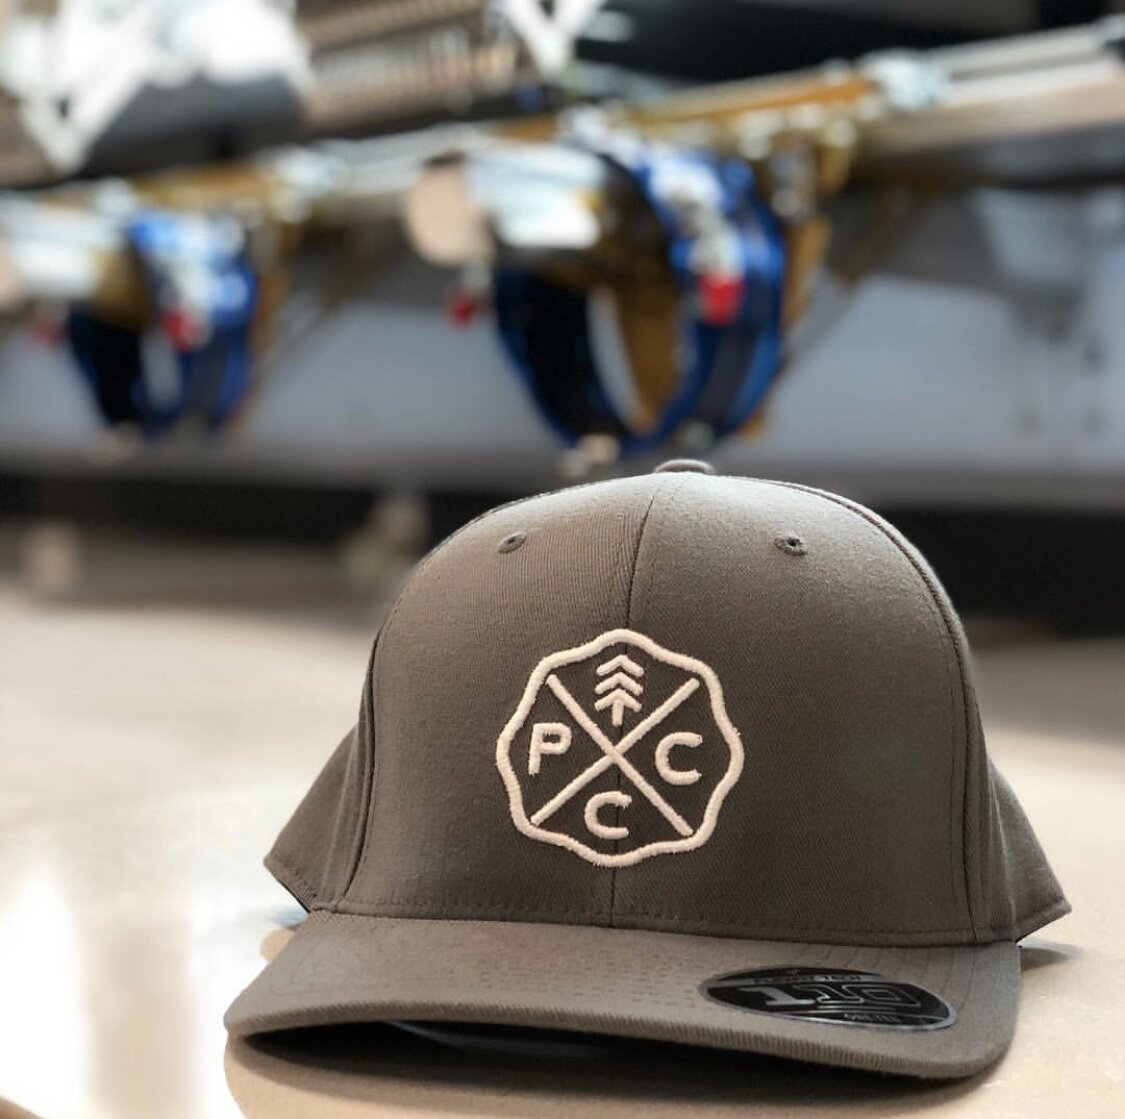 PCC HATS & OTHER GOODS